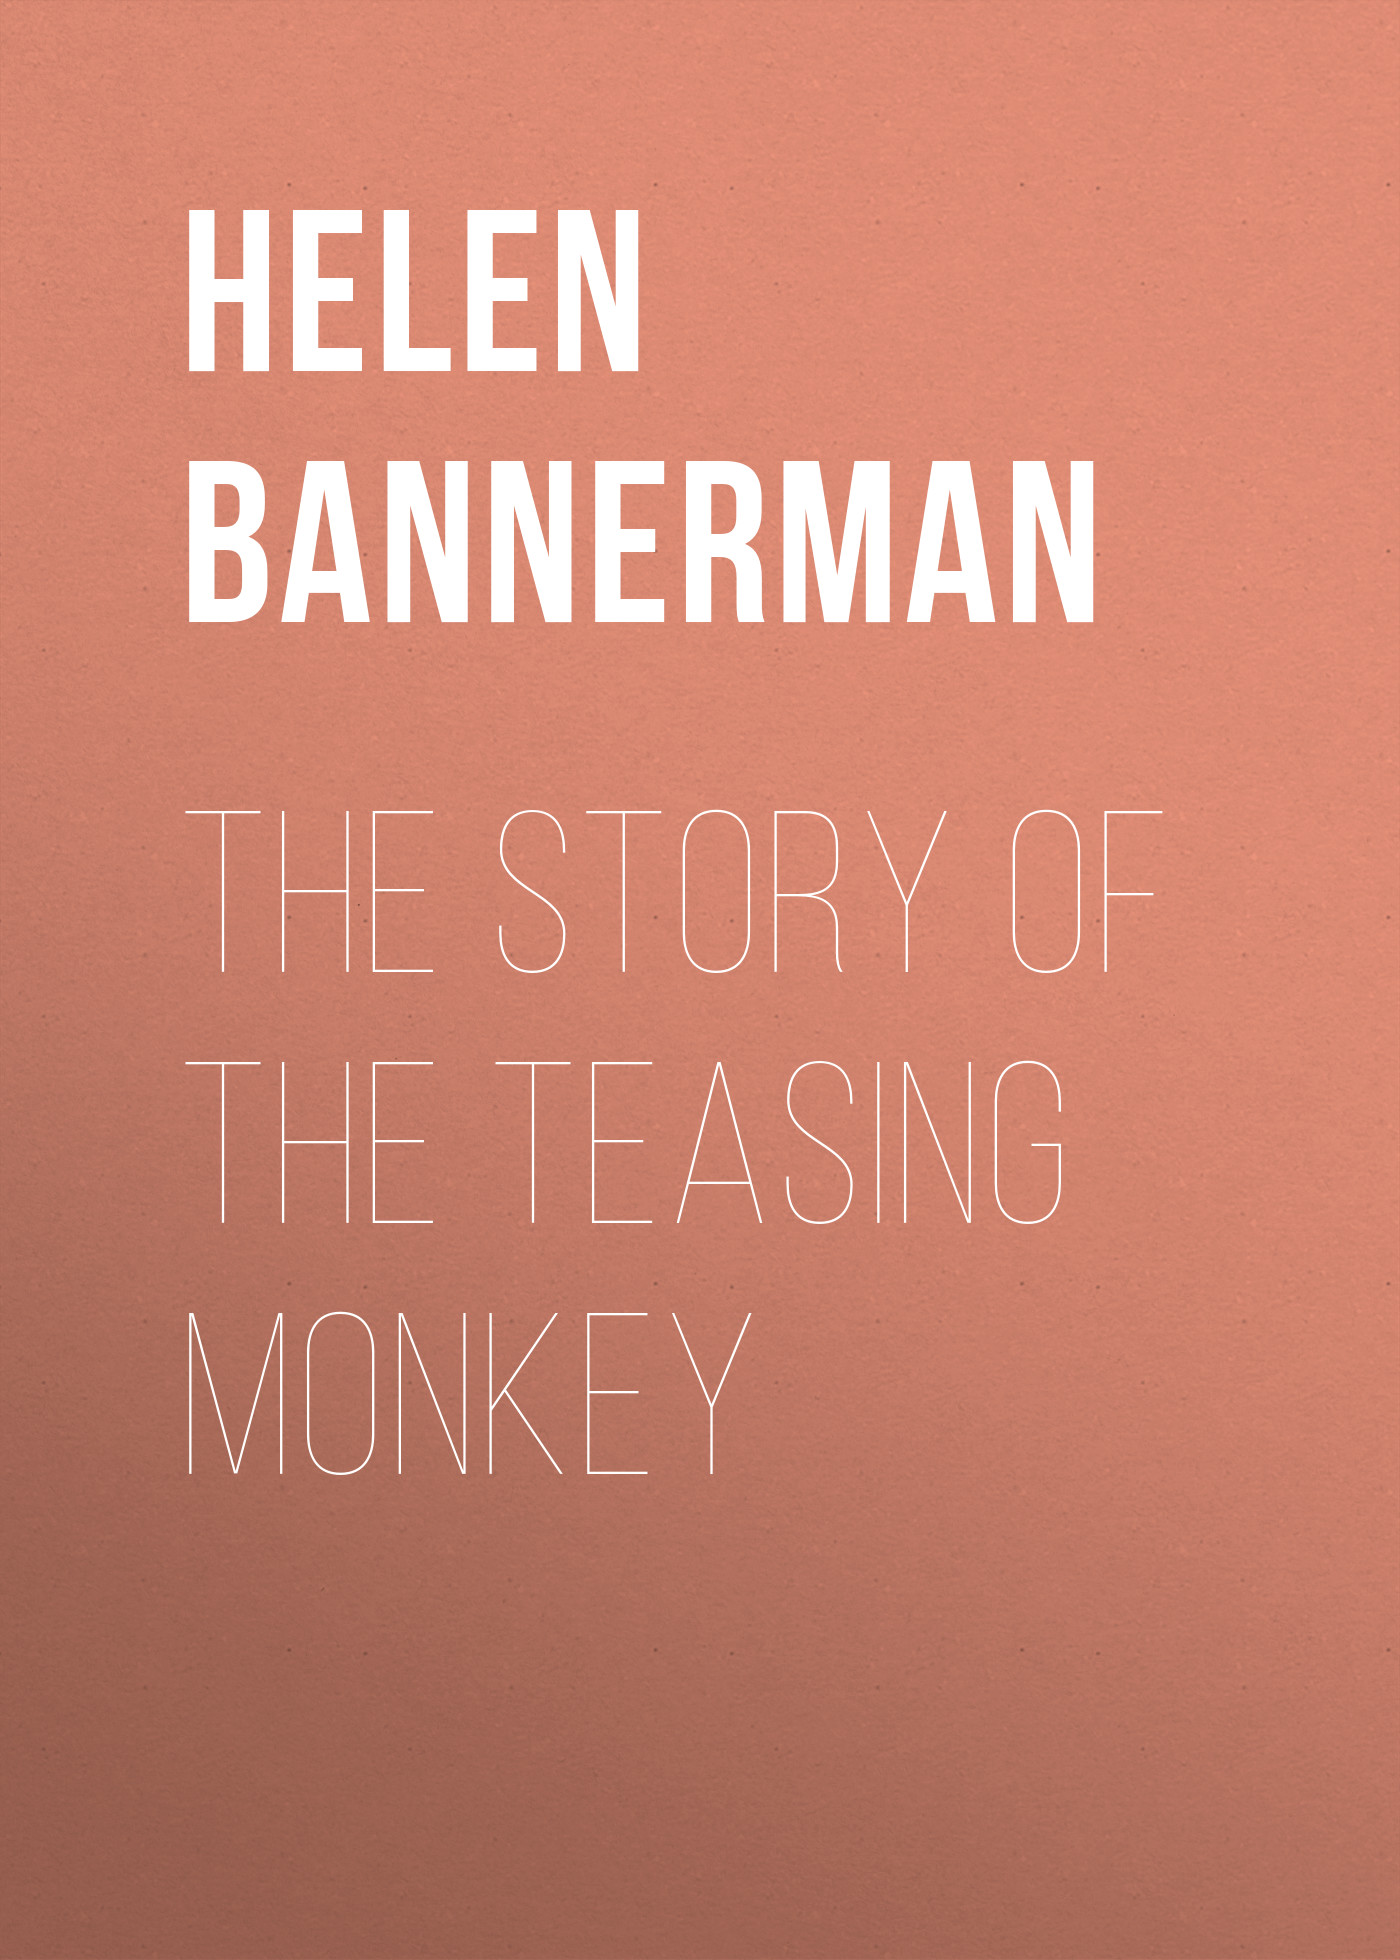 Bannerman Helen The Story of the Teasing Monkey аллянов ю письменский и физическая культура учебник для спо